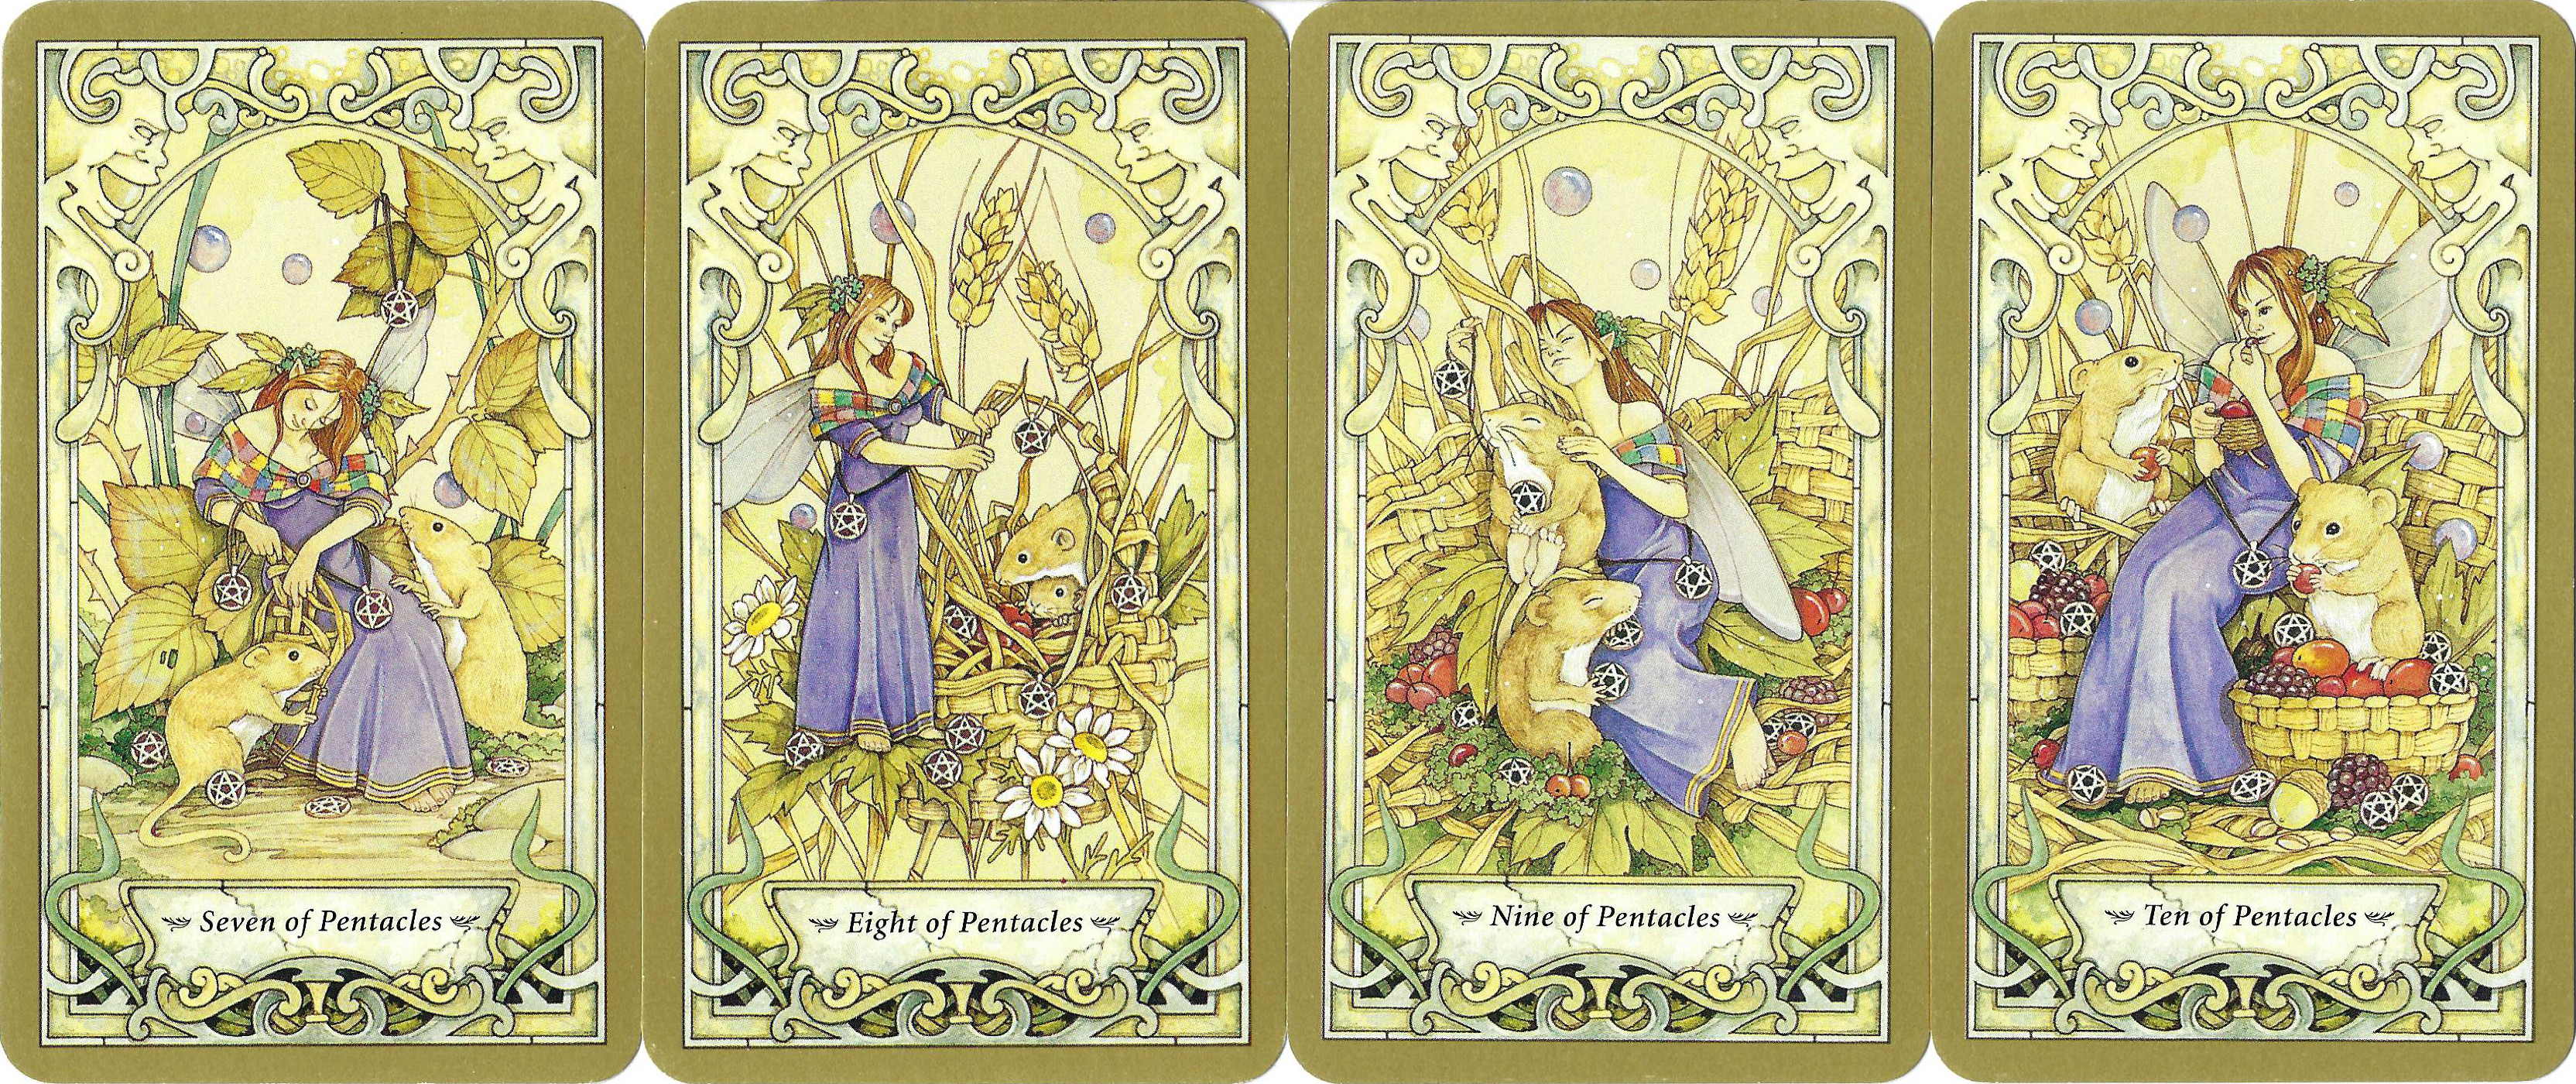 Tarot Suit Of Pentacles In Love Readings Tarot In Love The knight of pentacles represents the knight on his mighty steed, someone to come in and rescue you. tarot suit of pentacles in love